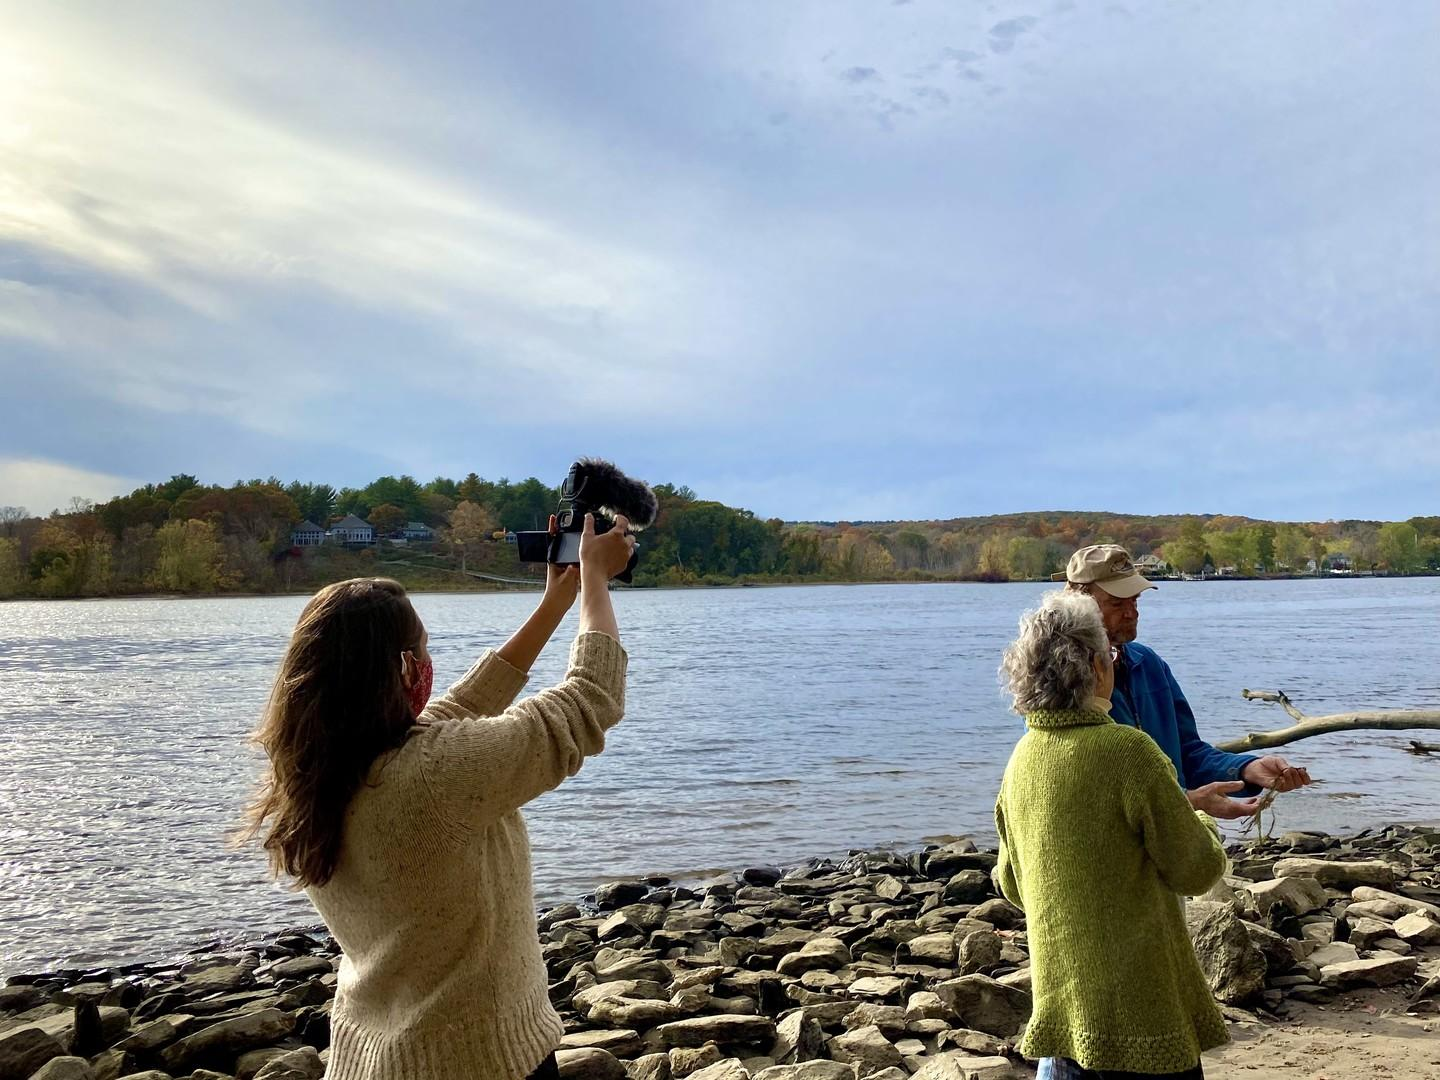 Invading The Connecticut River: The Spread of Hydrilla